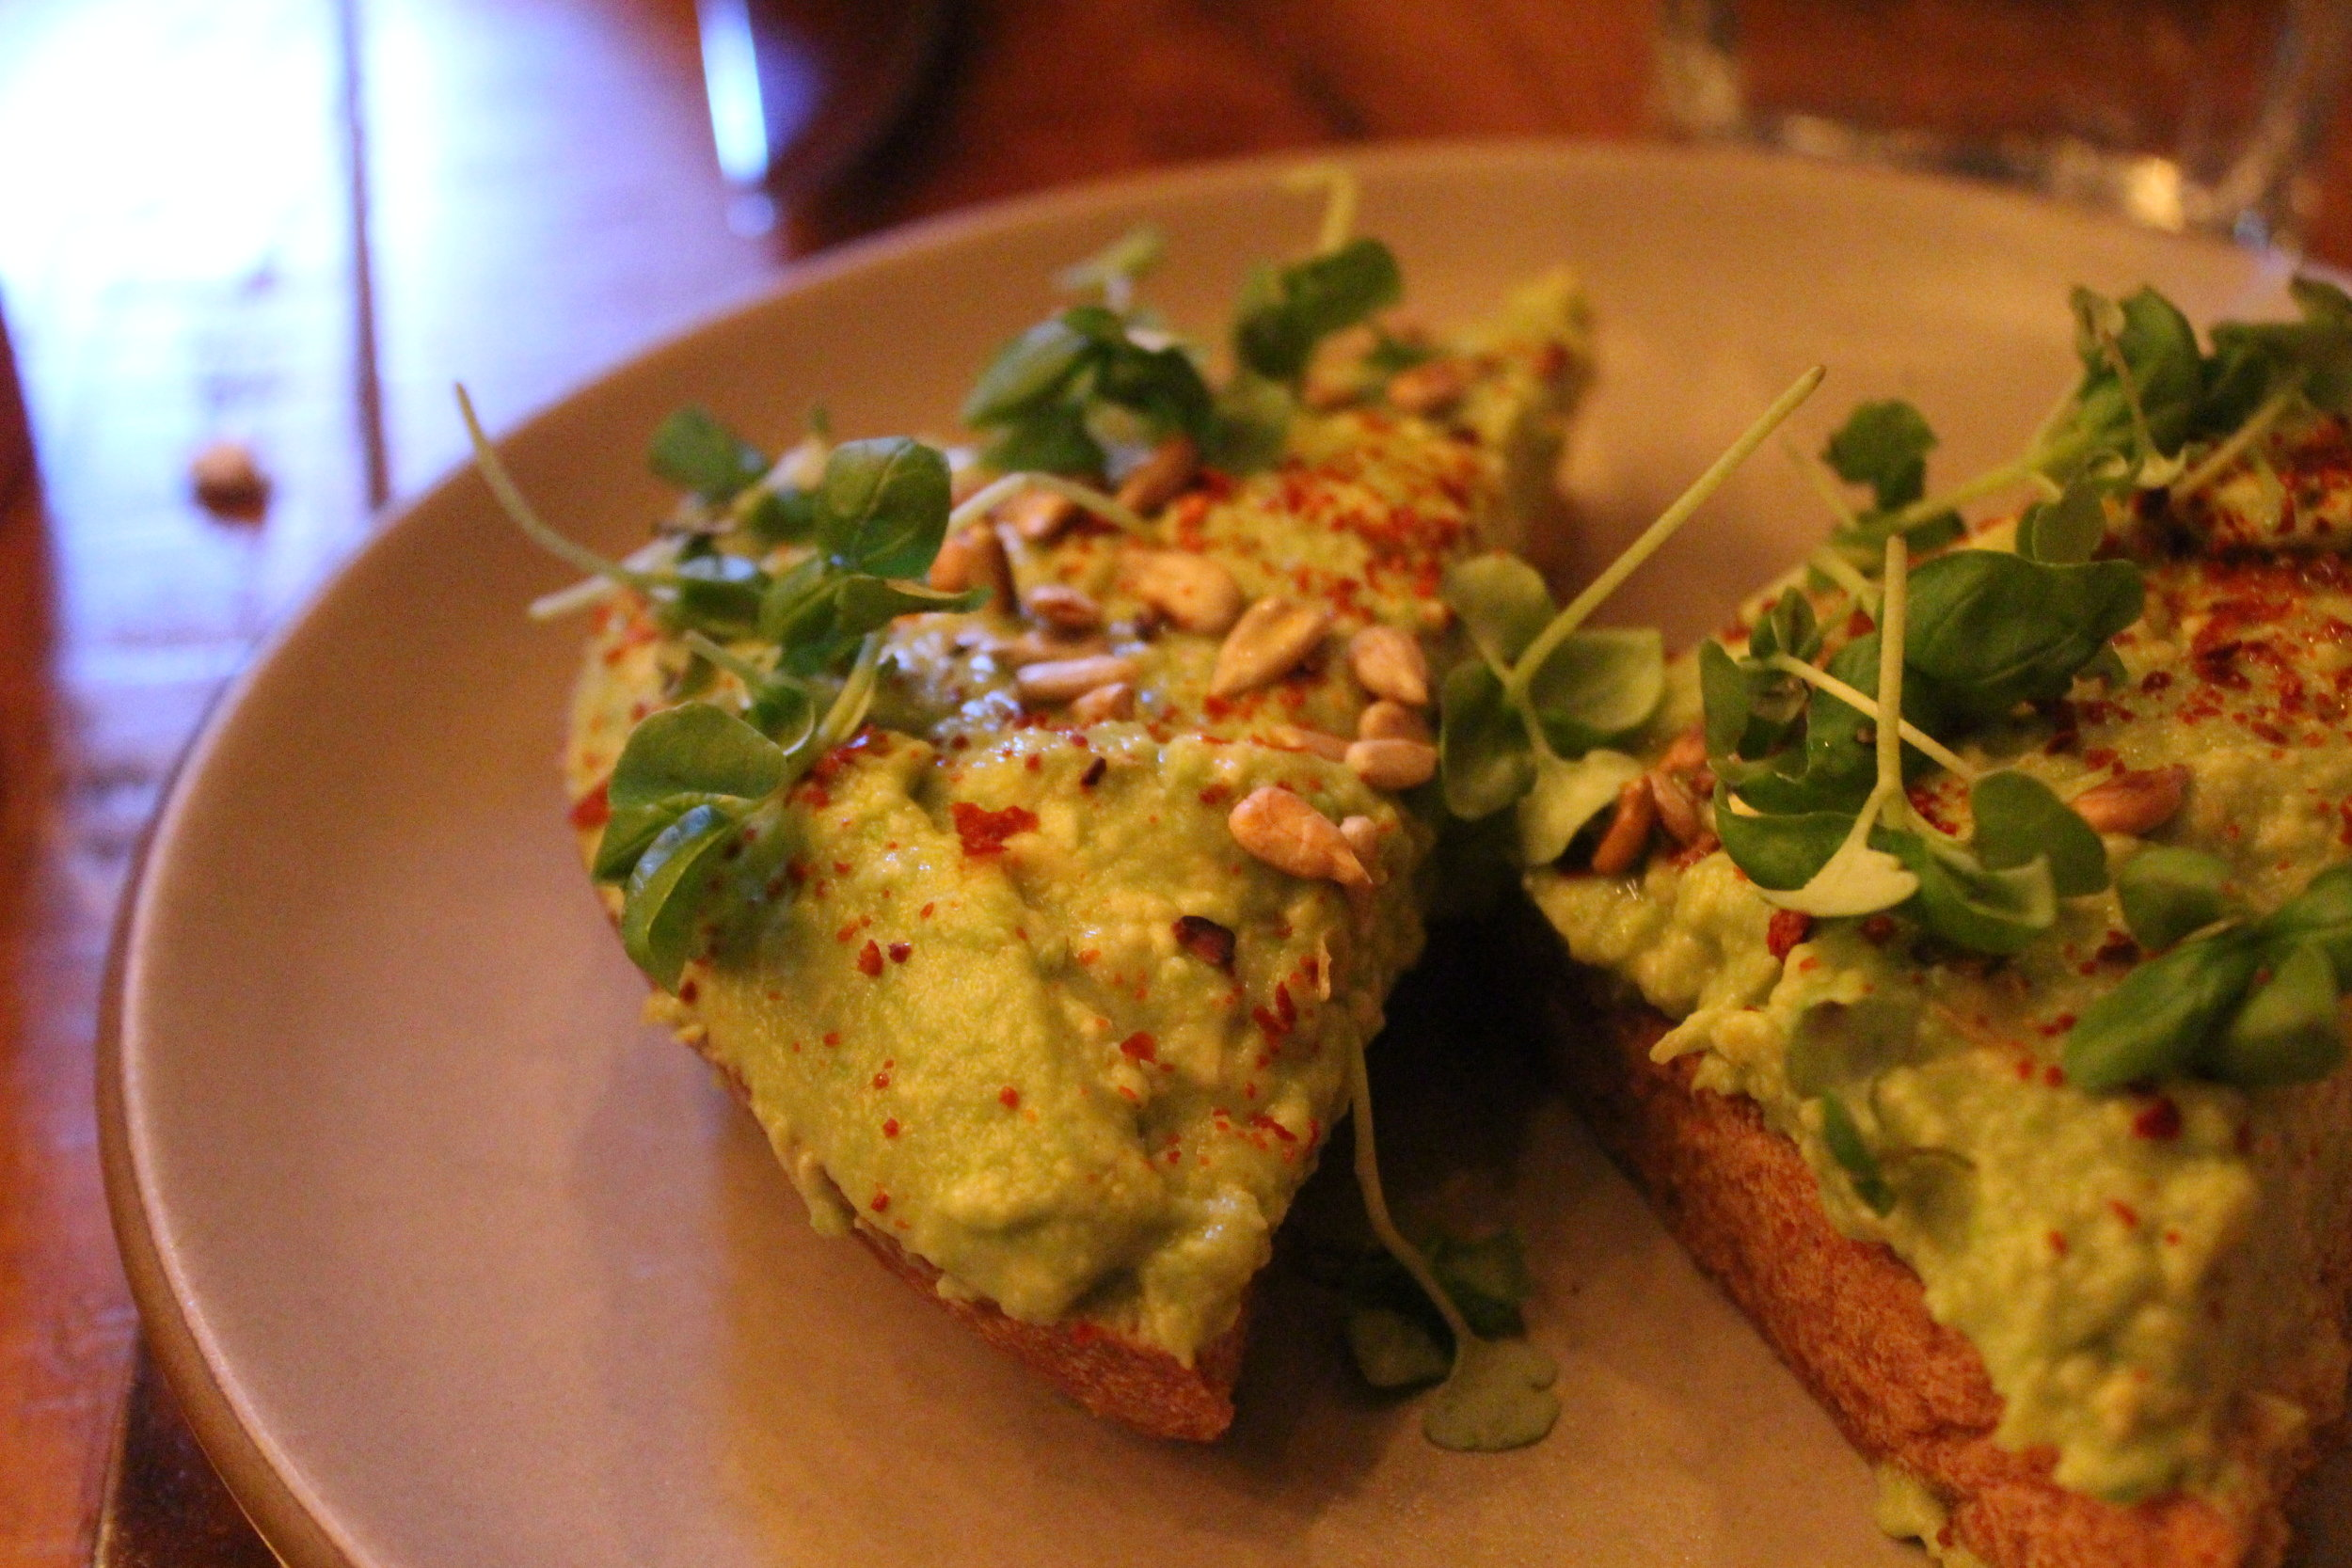 Avocado Toast (Homemade Wheat Bread, Aleppo Pepper, Lemon, Lebanese Olive Oil, Seeds and Sprouts, Basil)